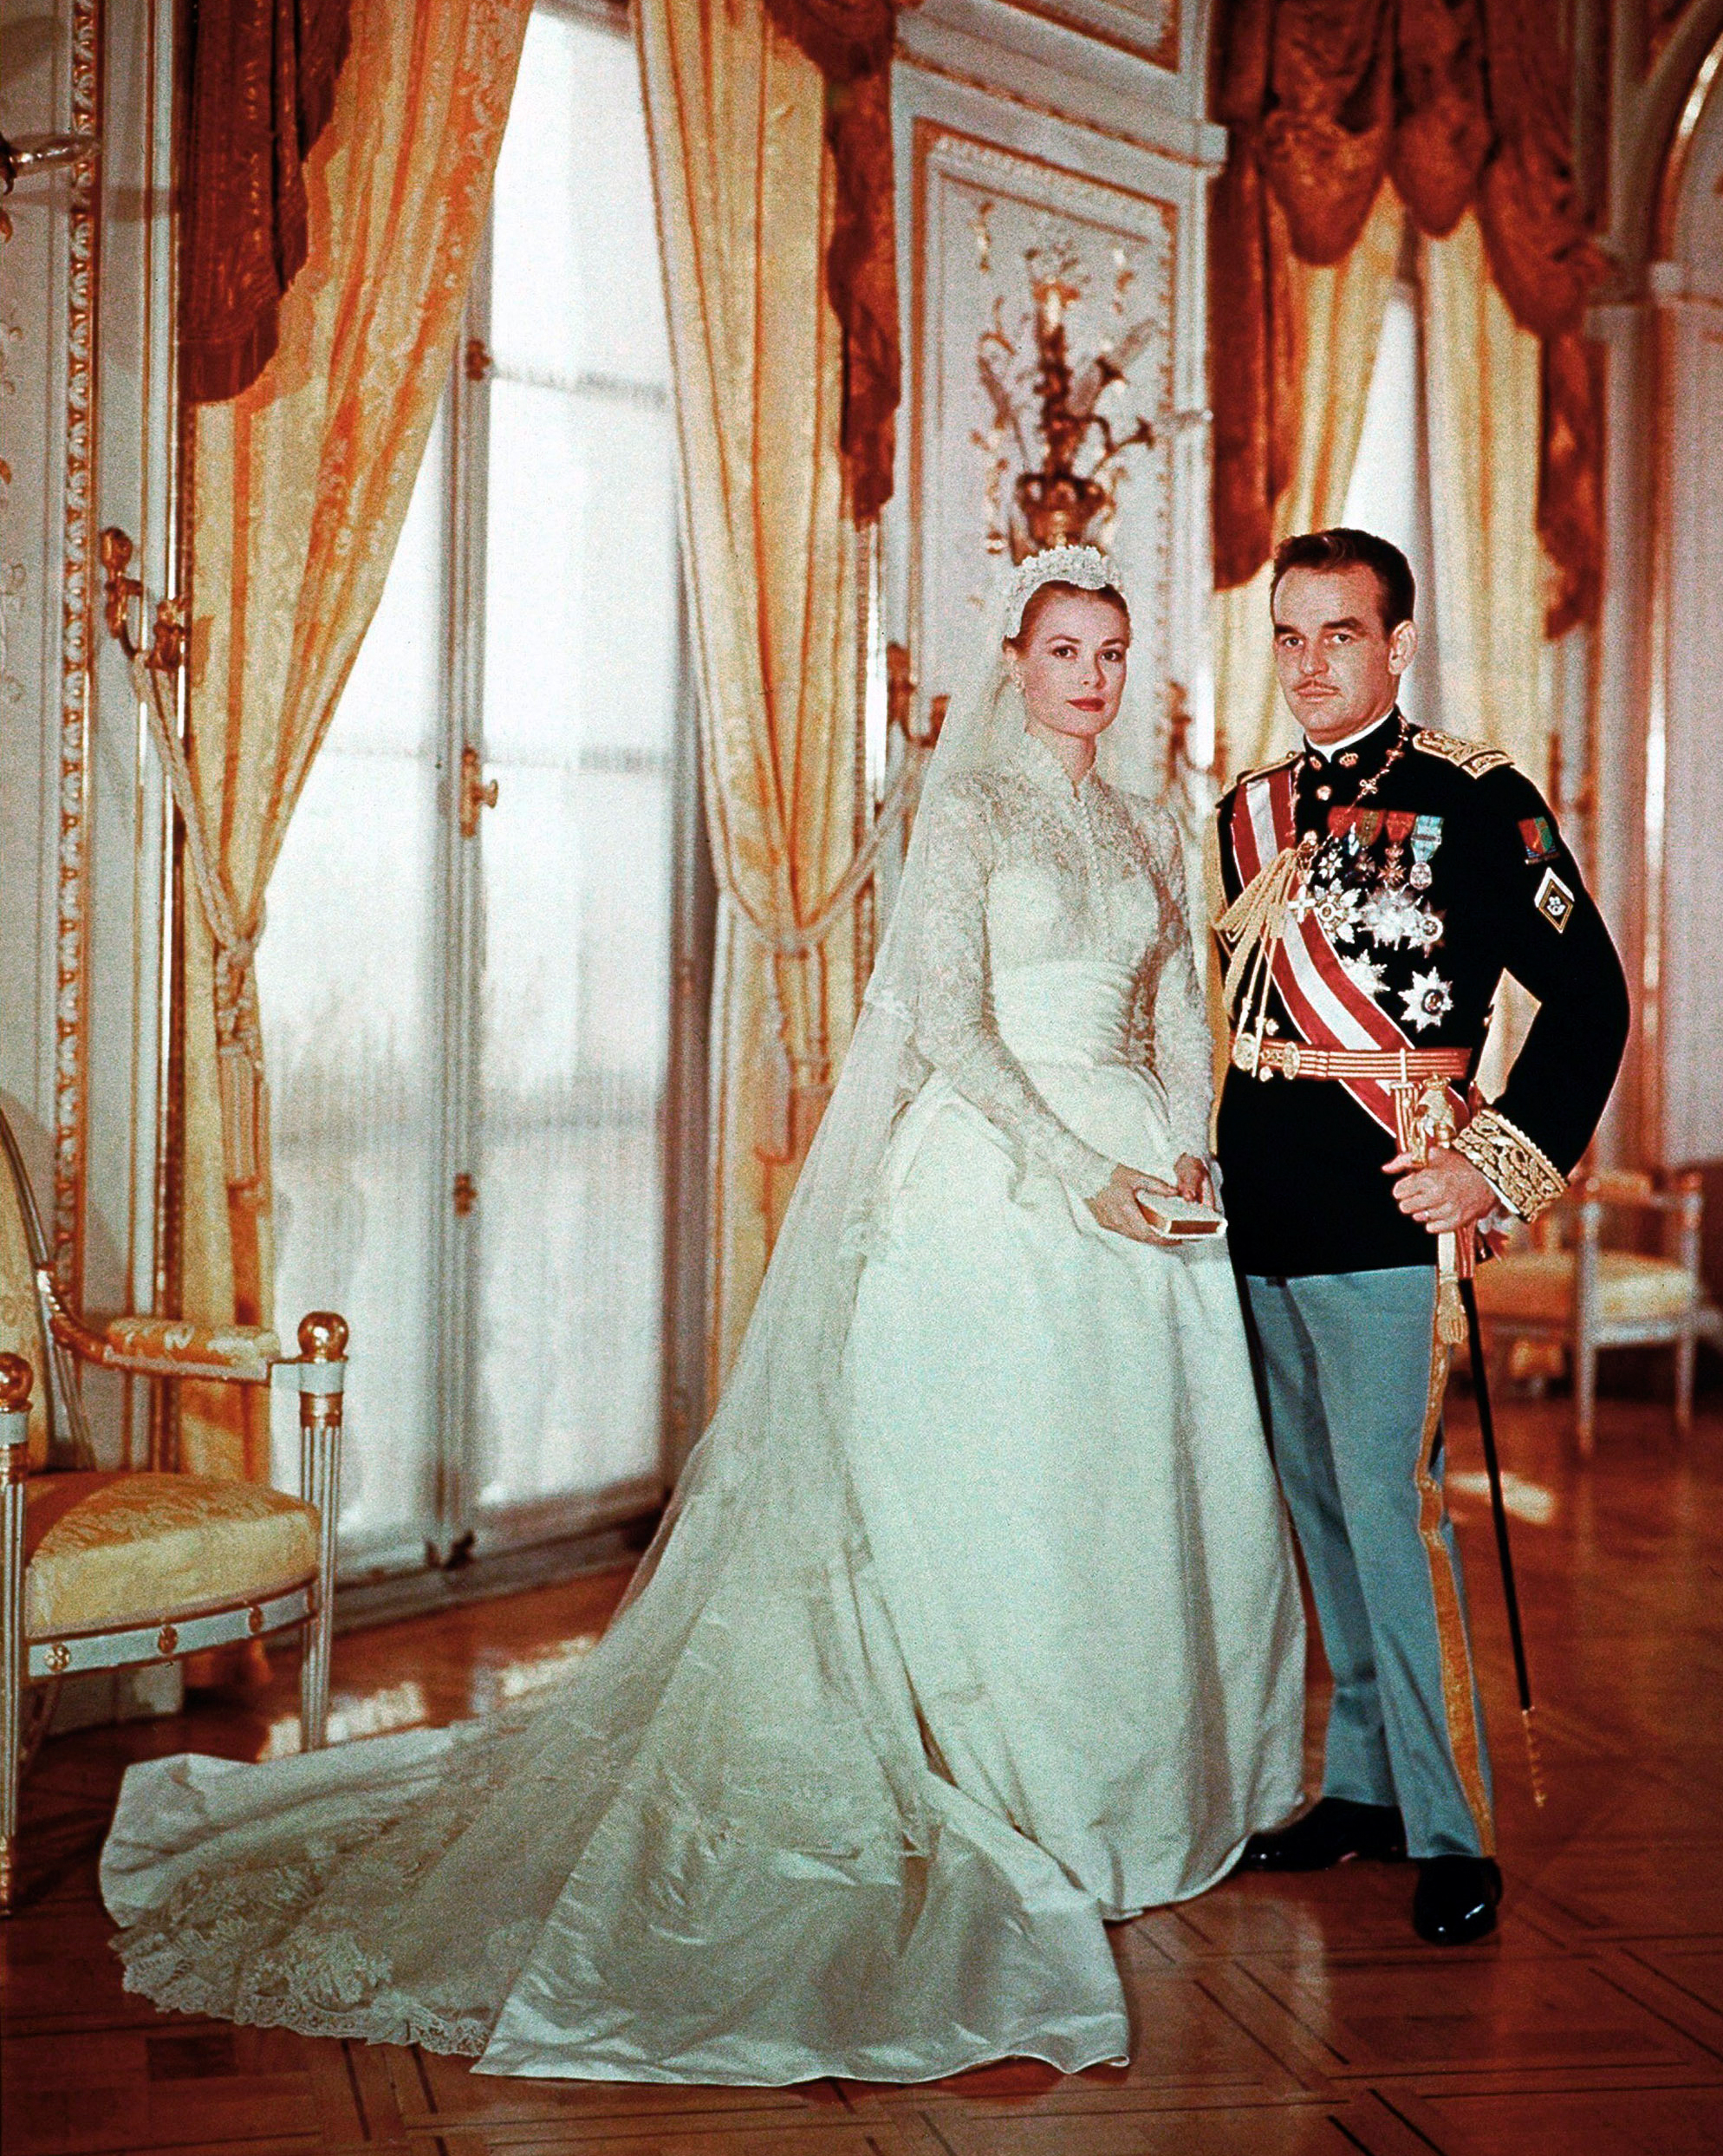 royal-wedding-dress-grace-kelly-monaco-117078422-1115.jpg